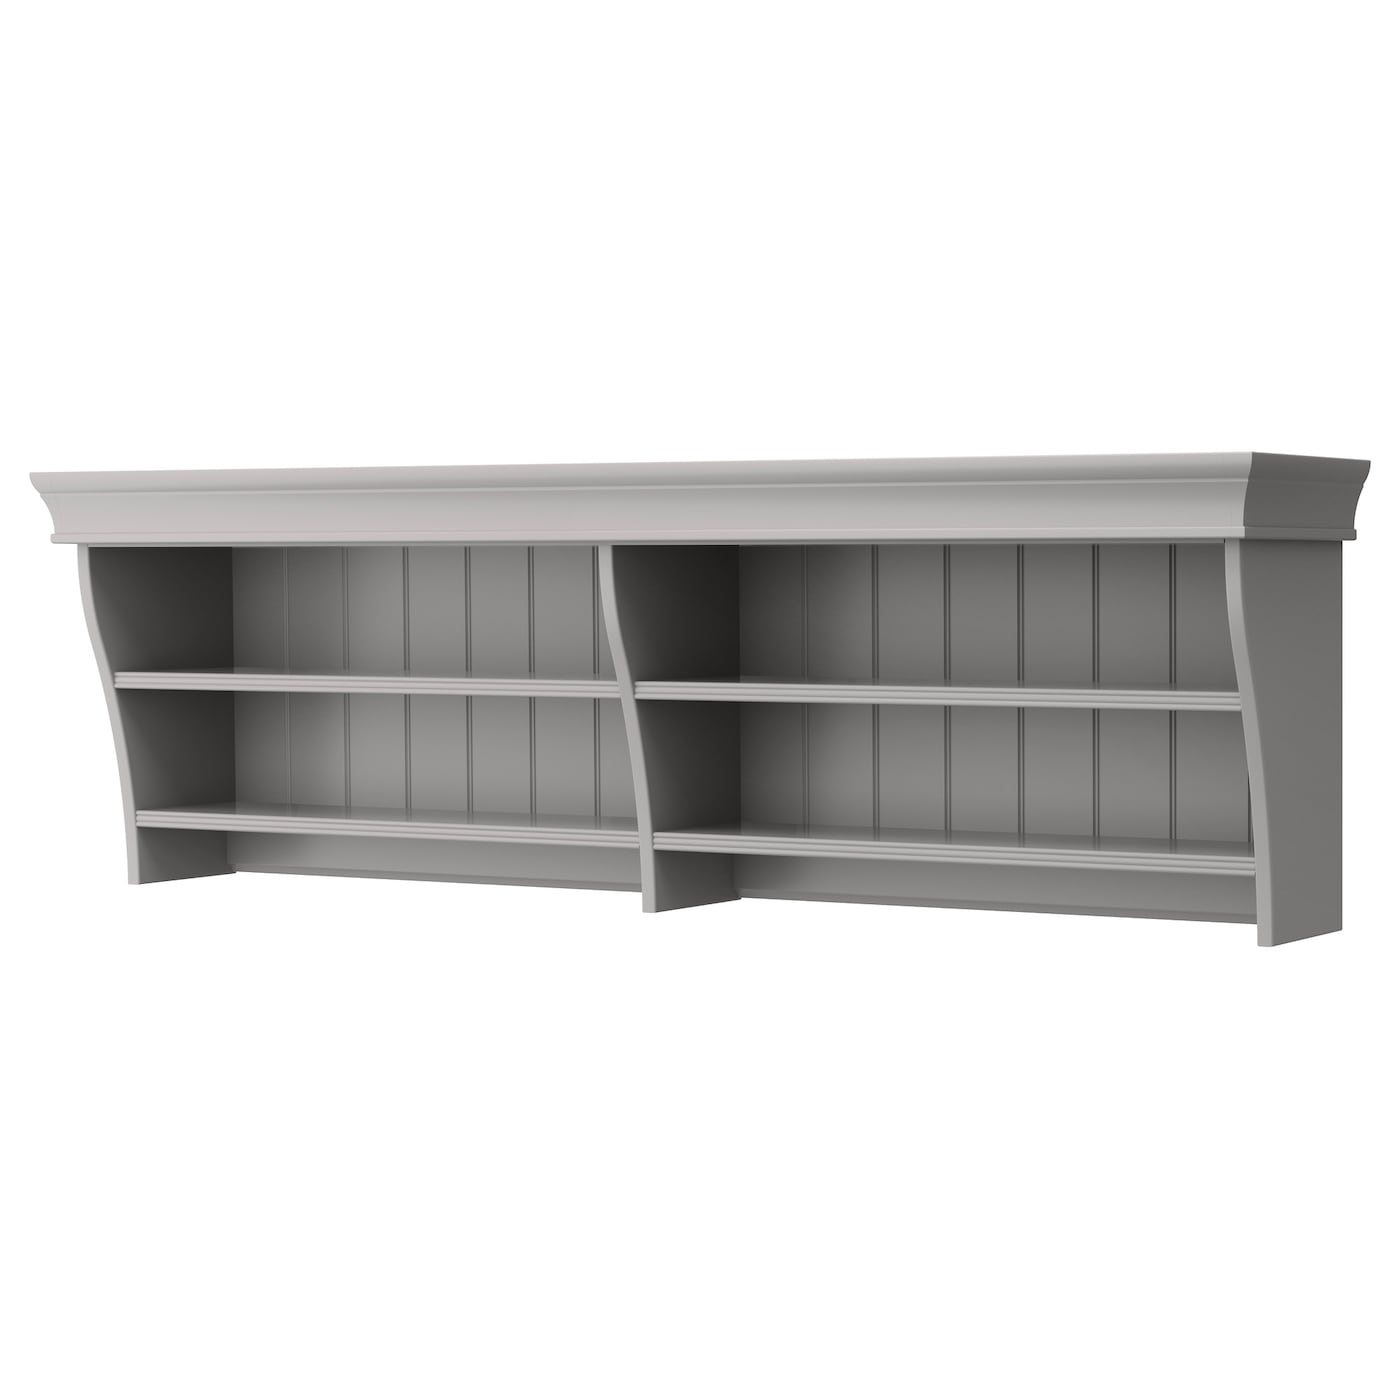 Wall Shelves Floating Shelves Ikea Ireland # Meuble Tv Angle Design Salon